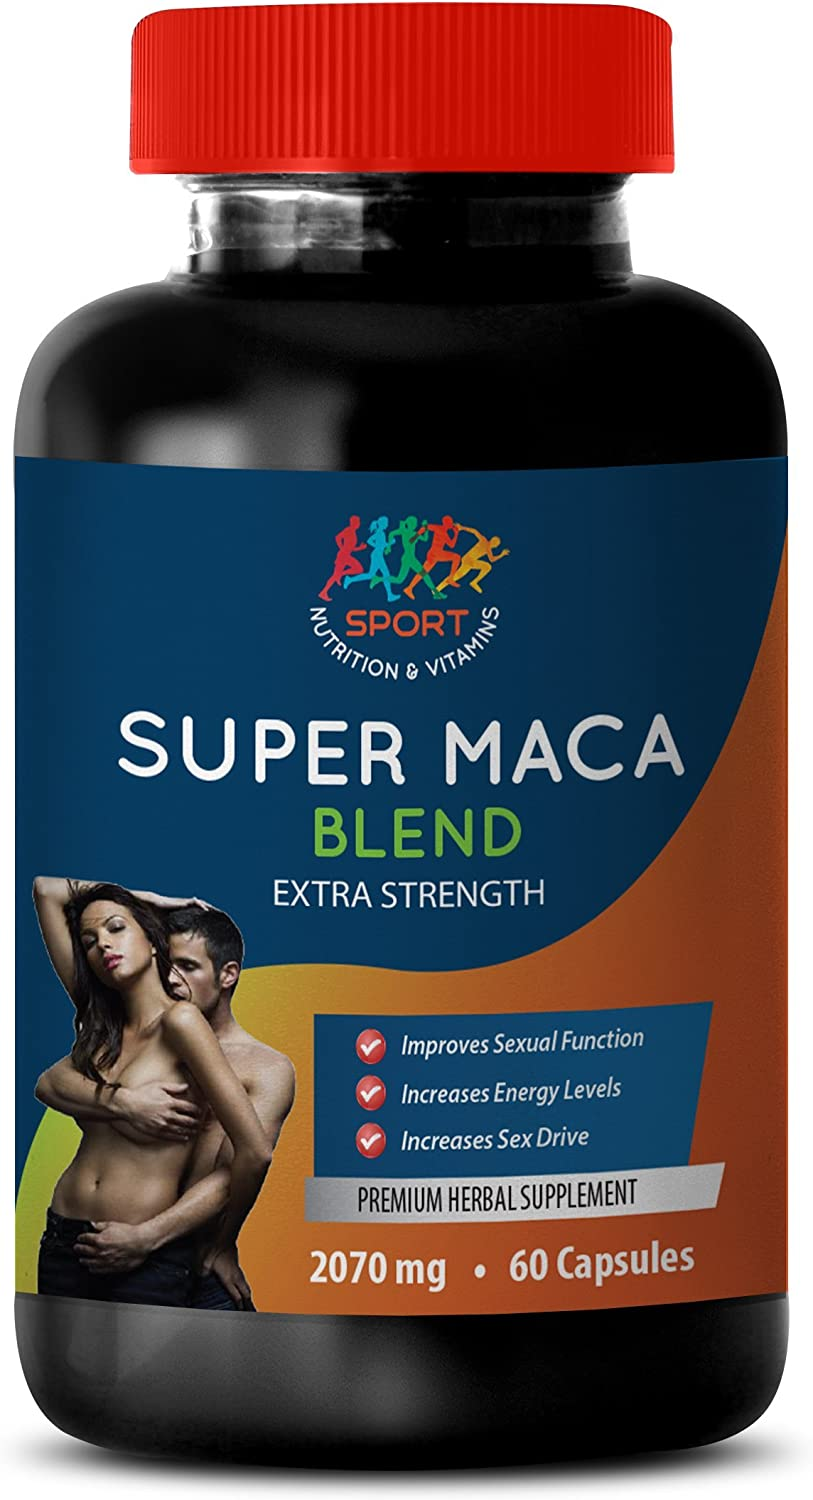 Male Enhancing Pills Erection Best Seller - Super MACA Blend 2070 MG - Extra Strength - maca with Horny Goat Weed - 1 Bottle 60 Capsules